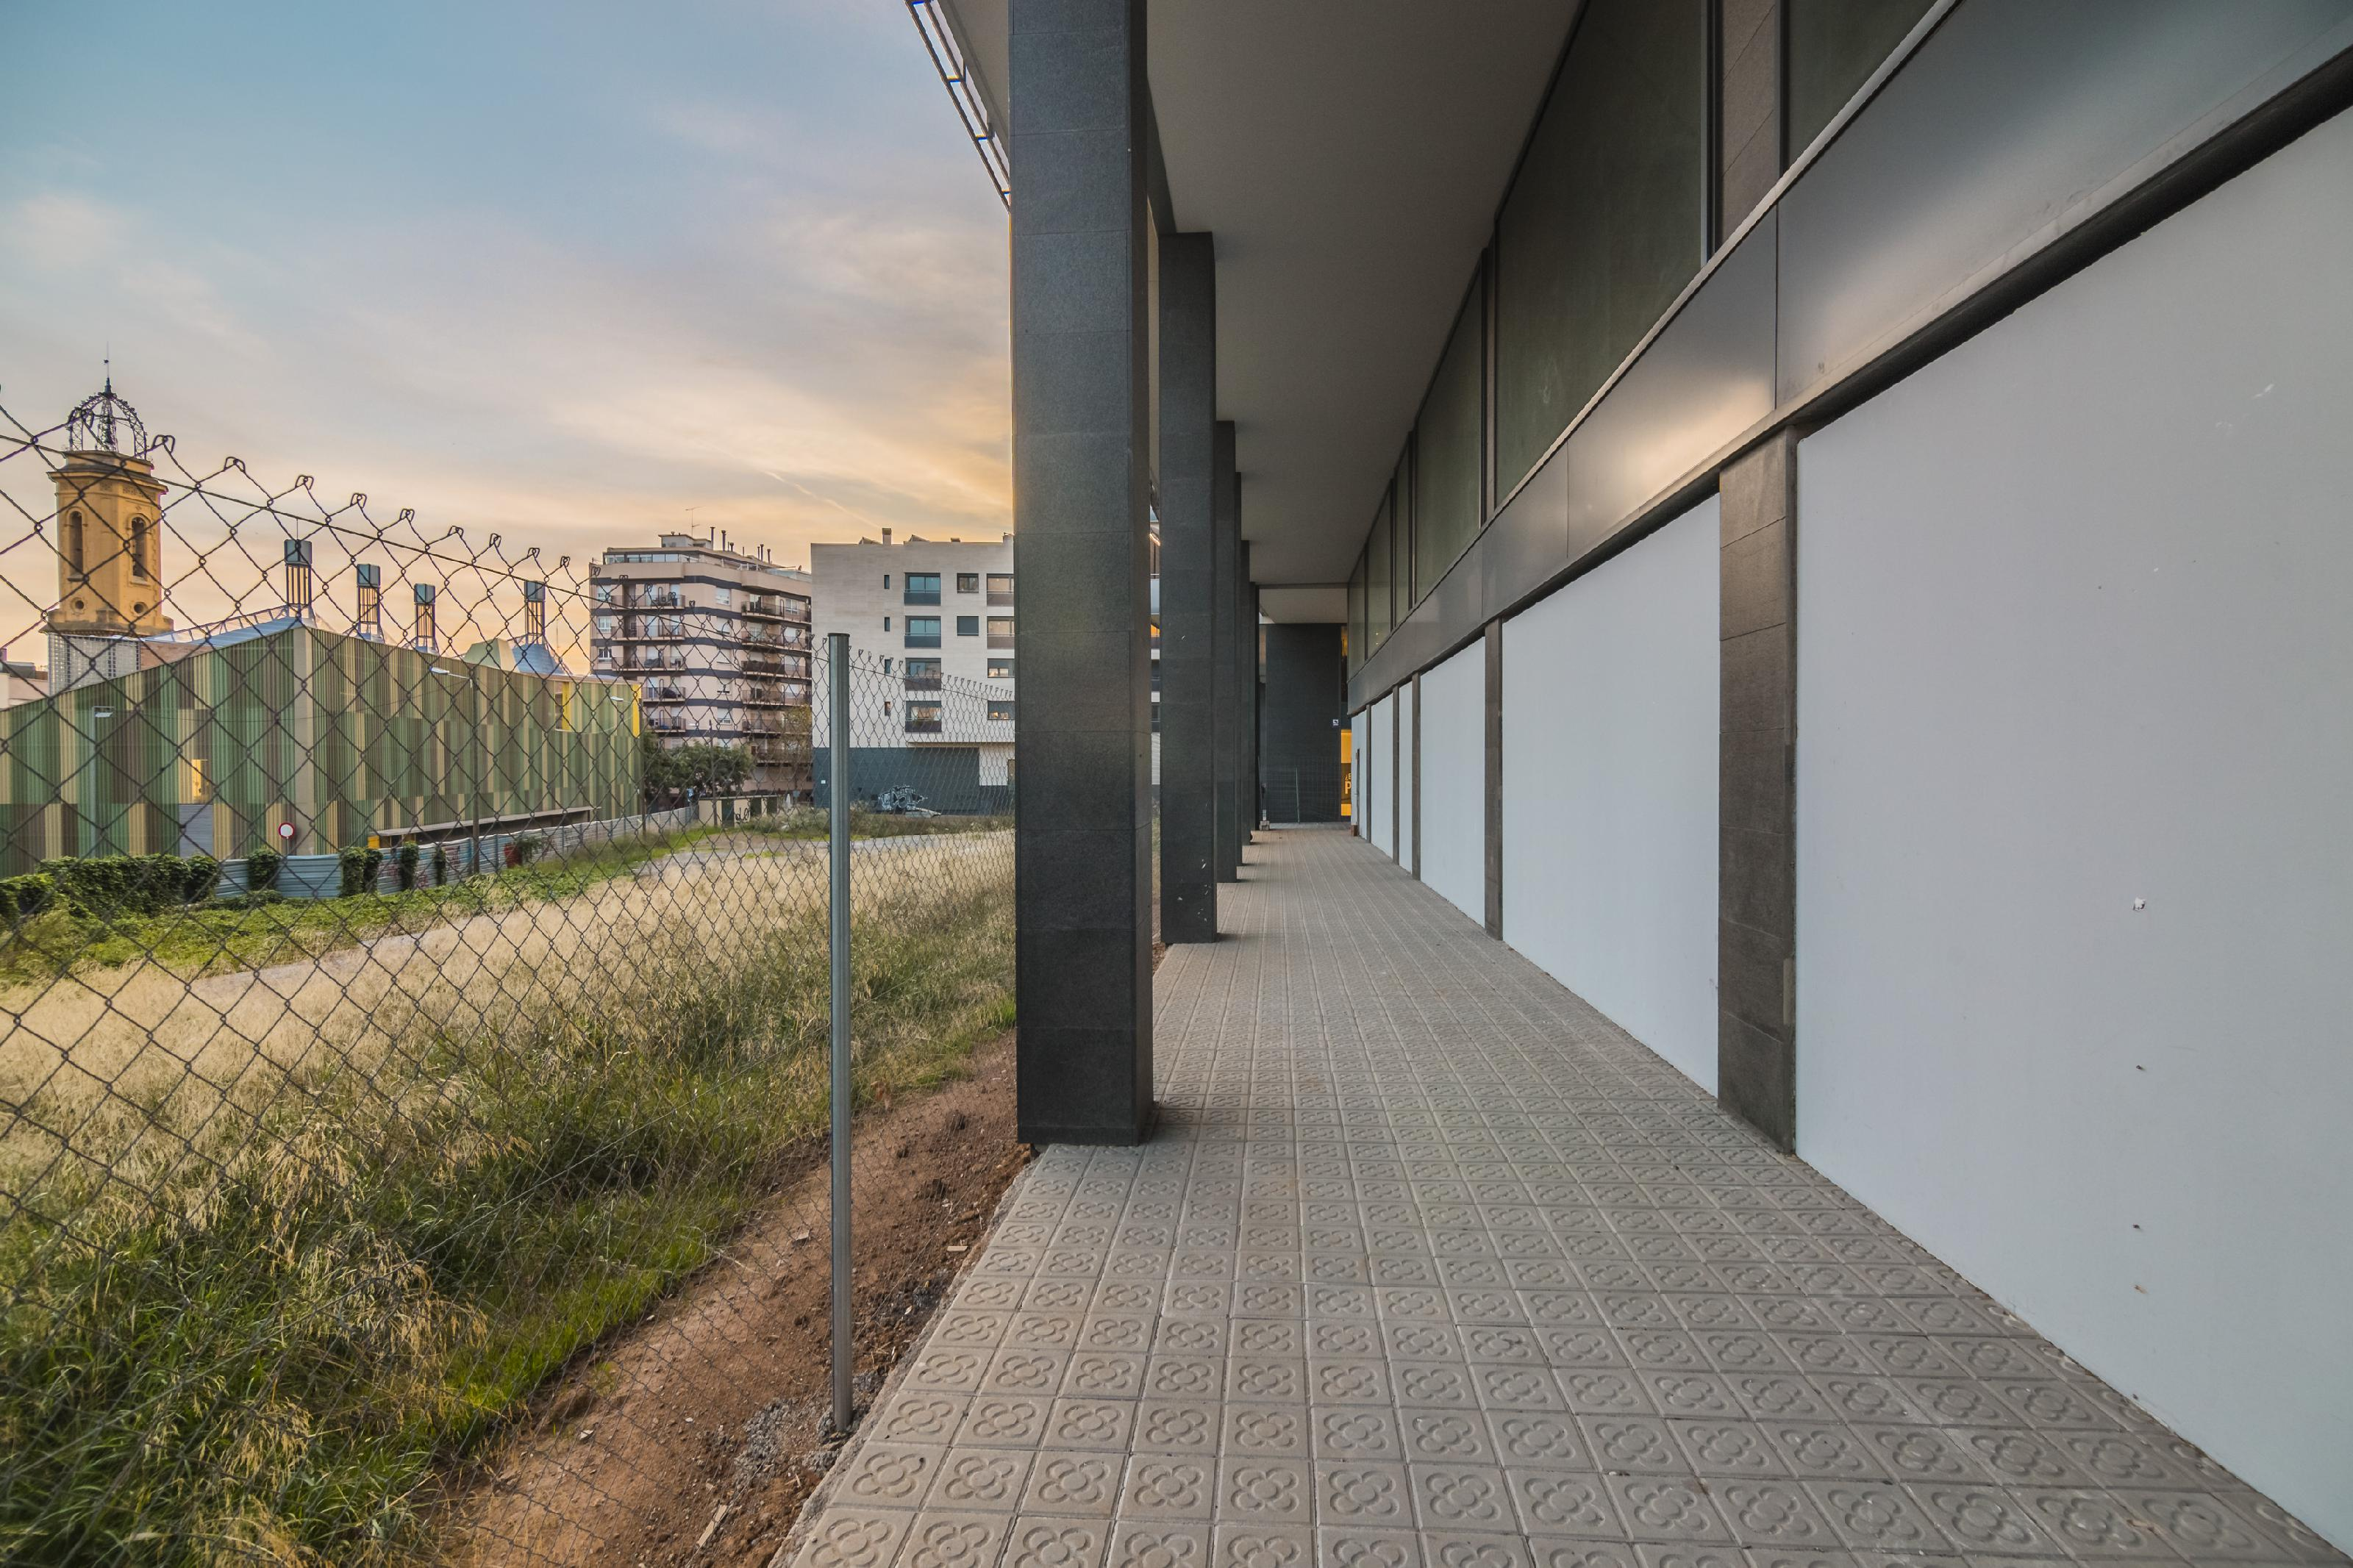 208066 Commercial Premises for sale in Les Corts, Les Corts 10